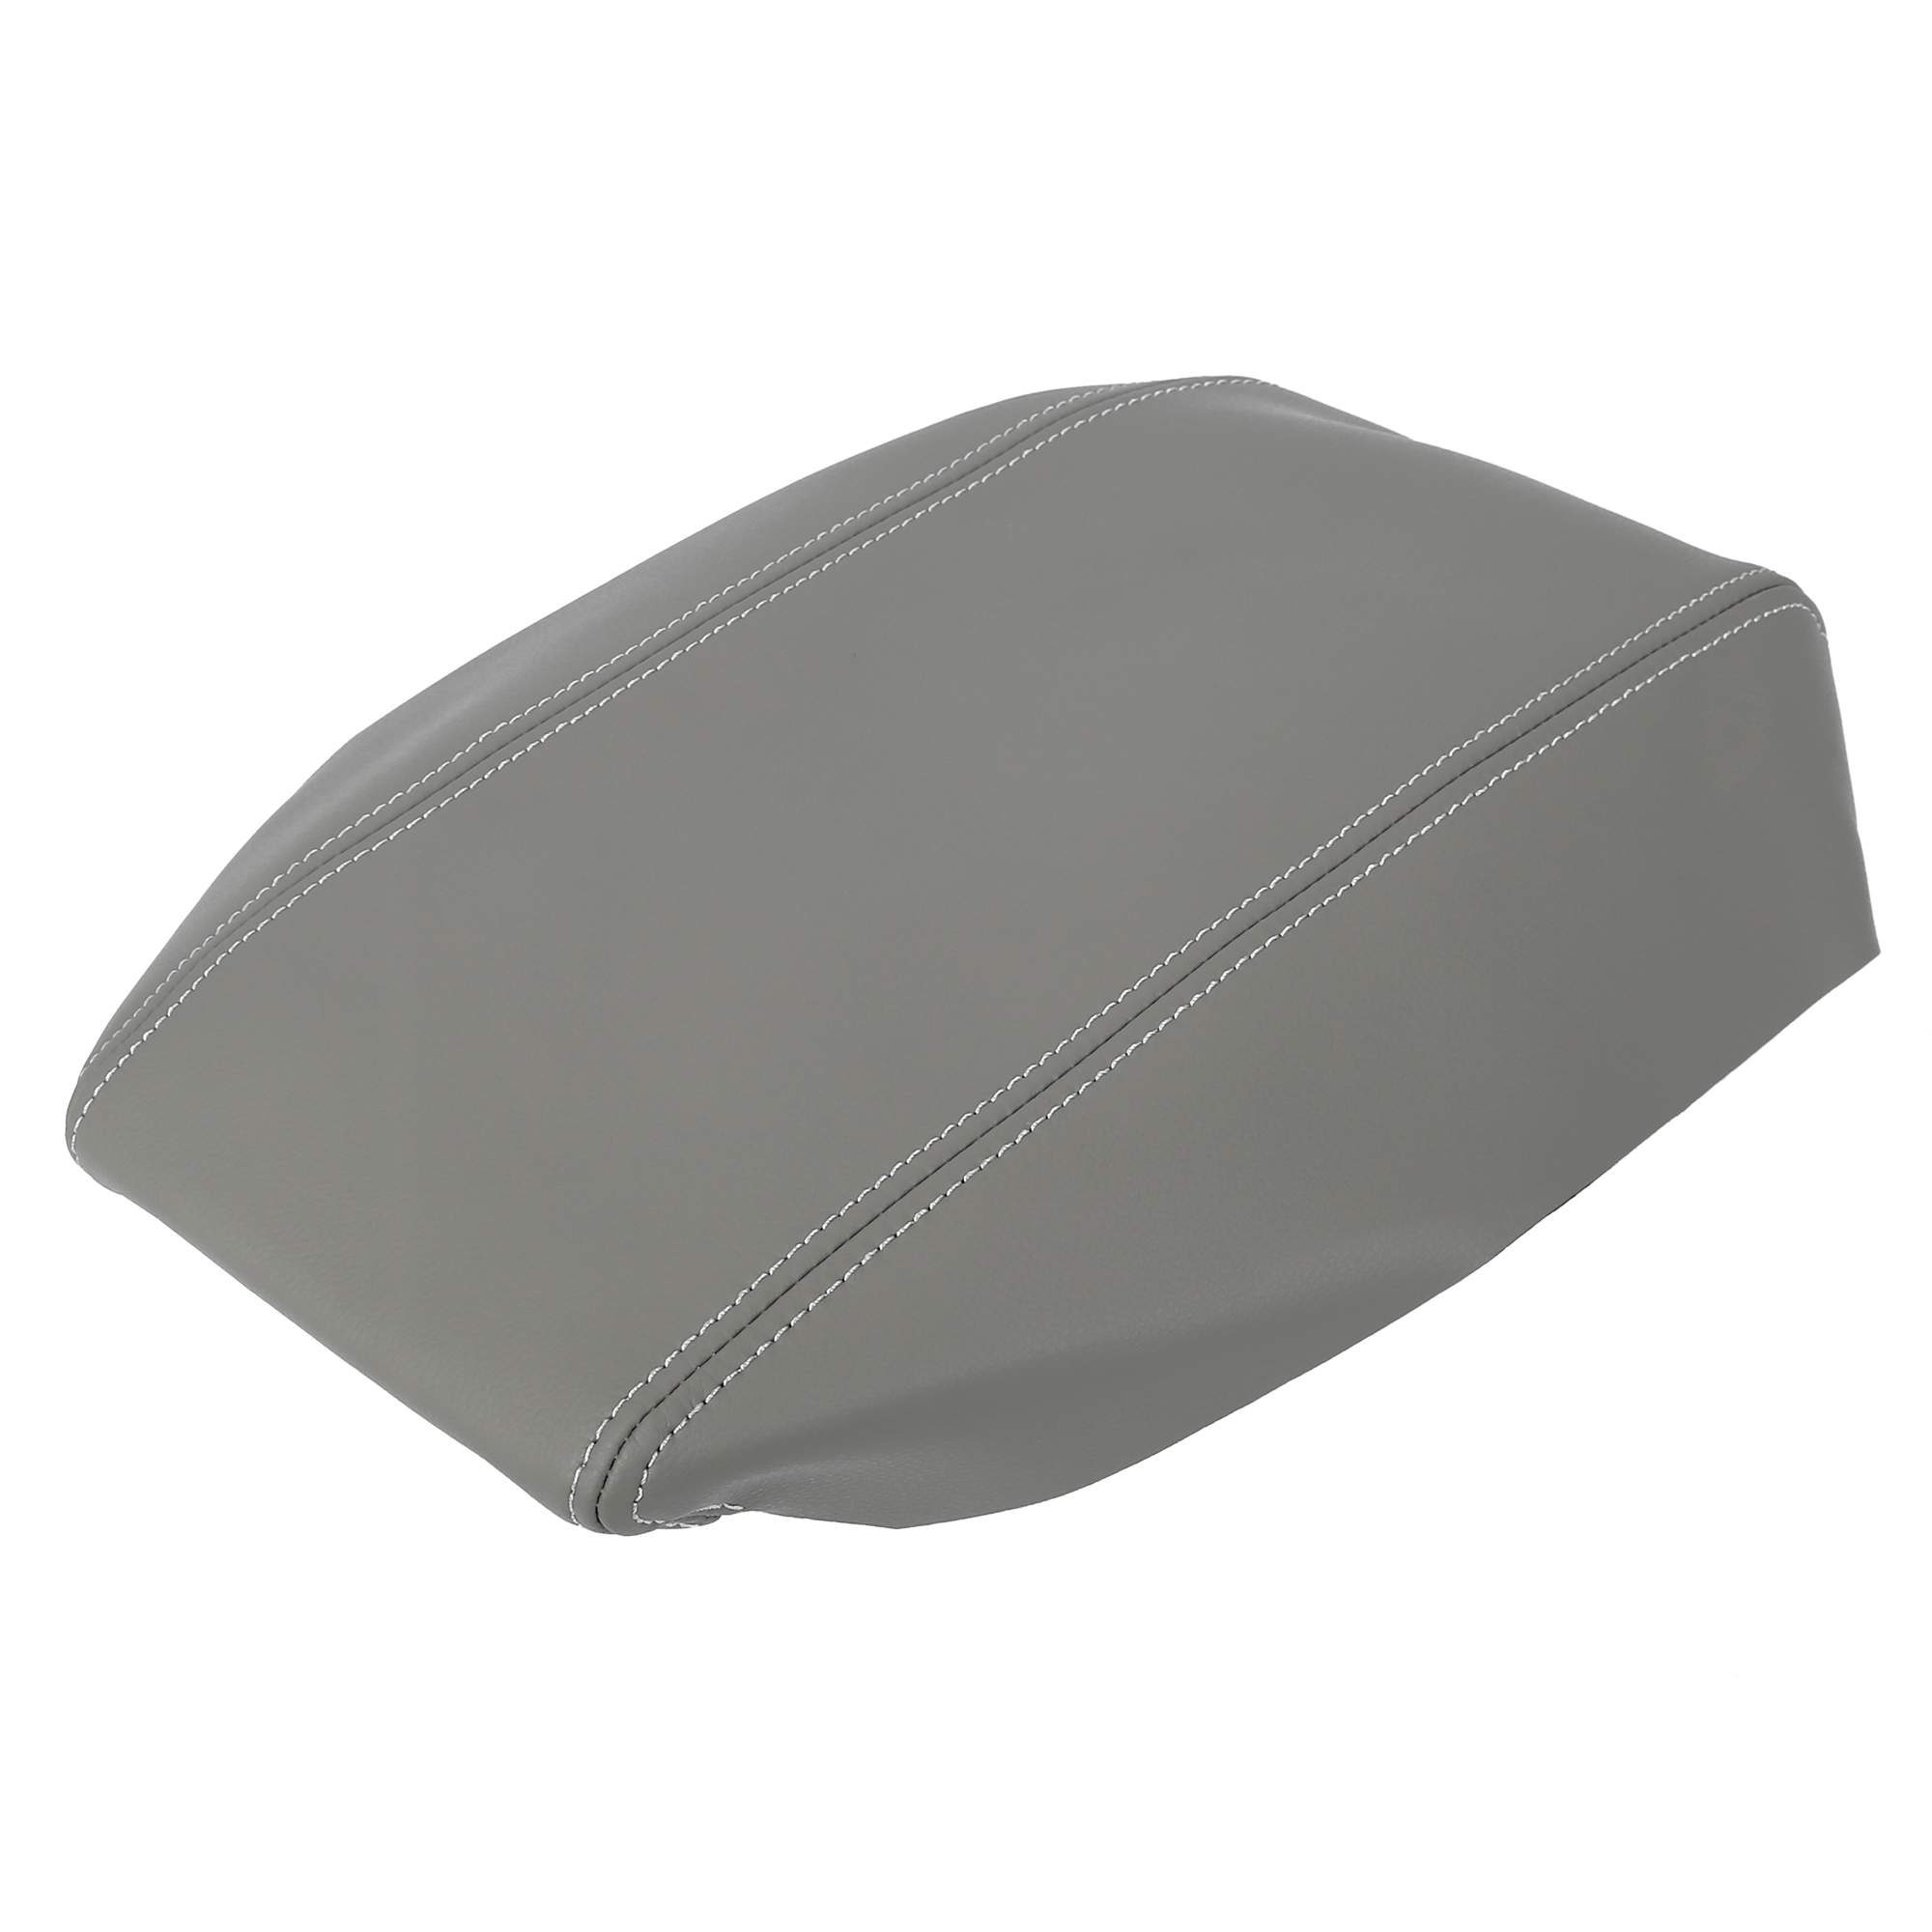 Car Center Console Lid Armrest Pad Cover Gray for Toyota Prius 2004-2009